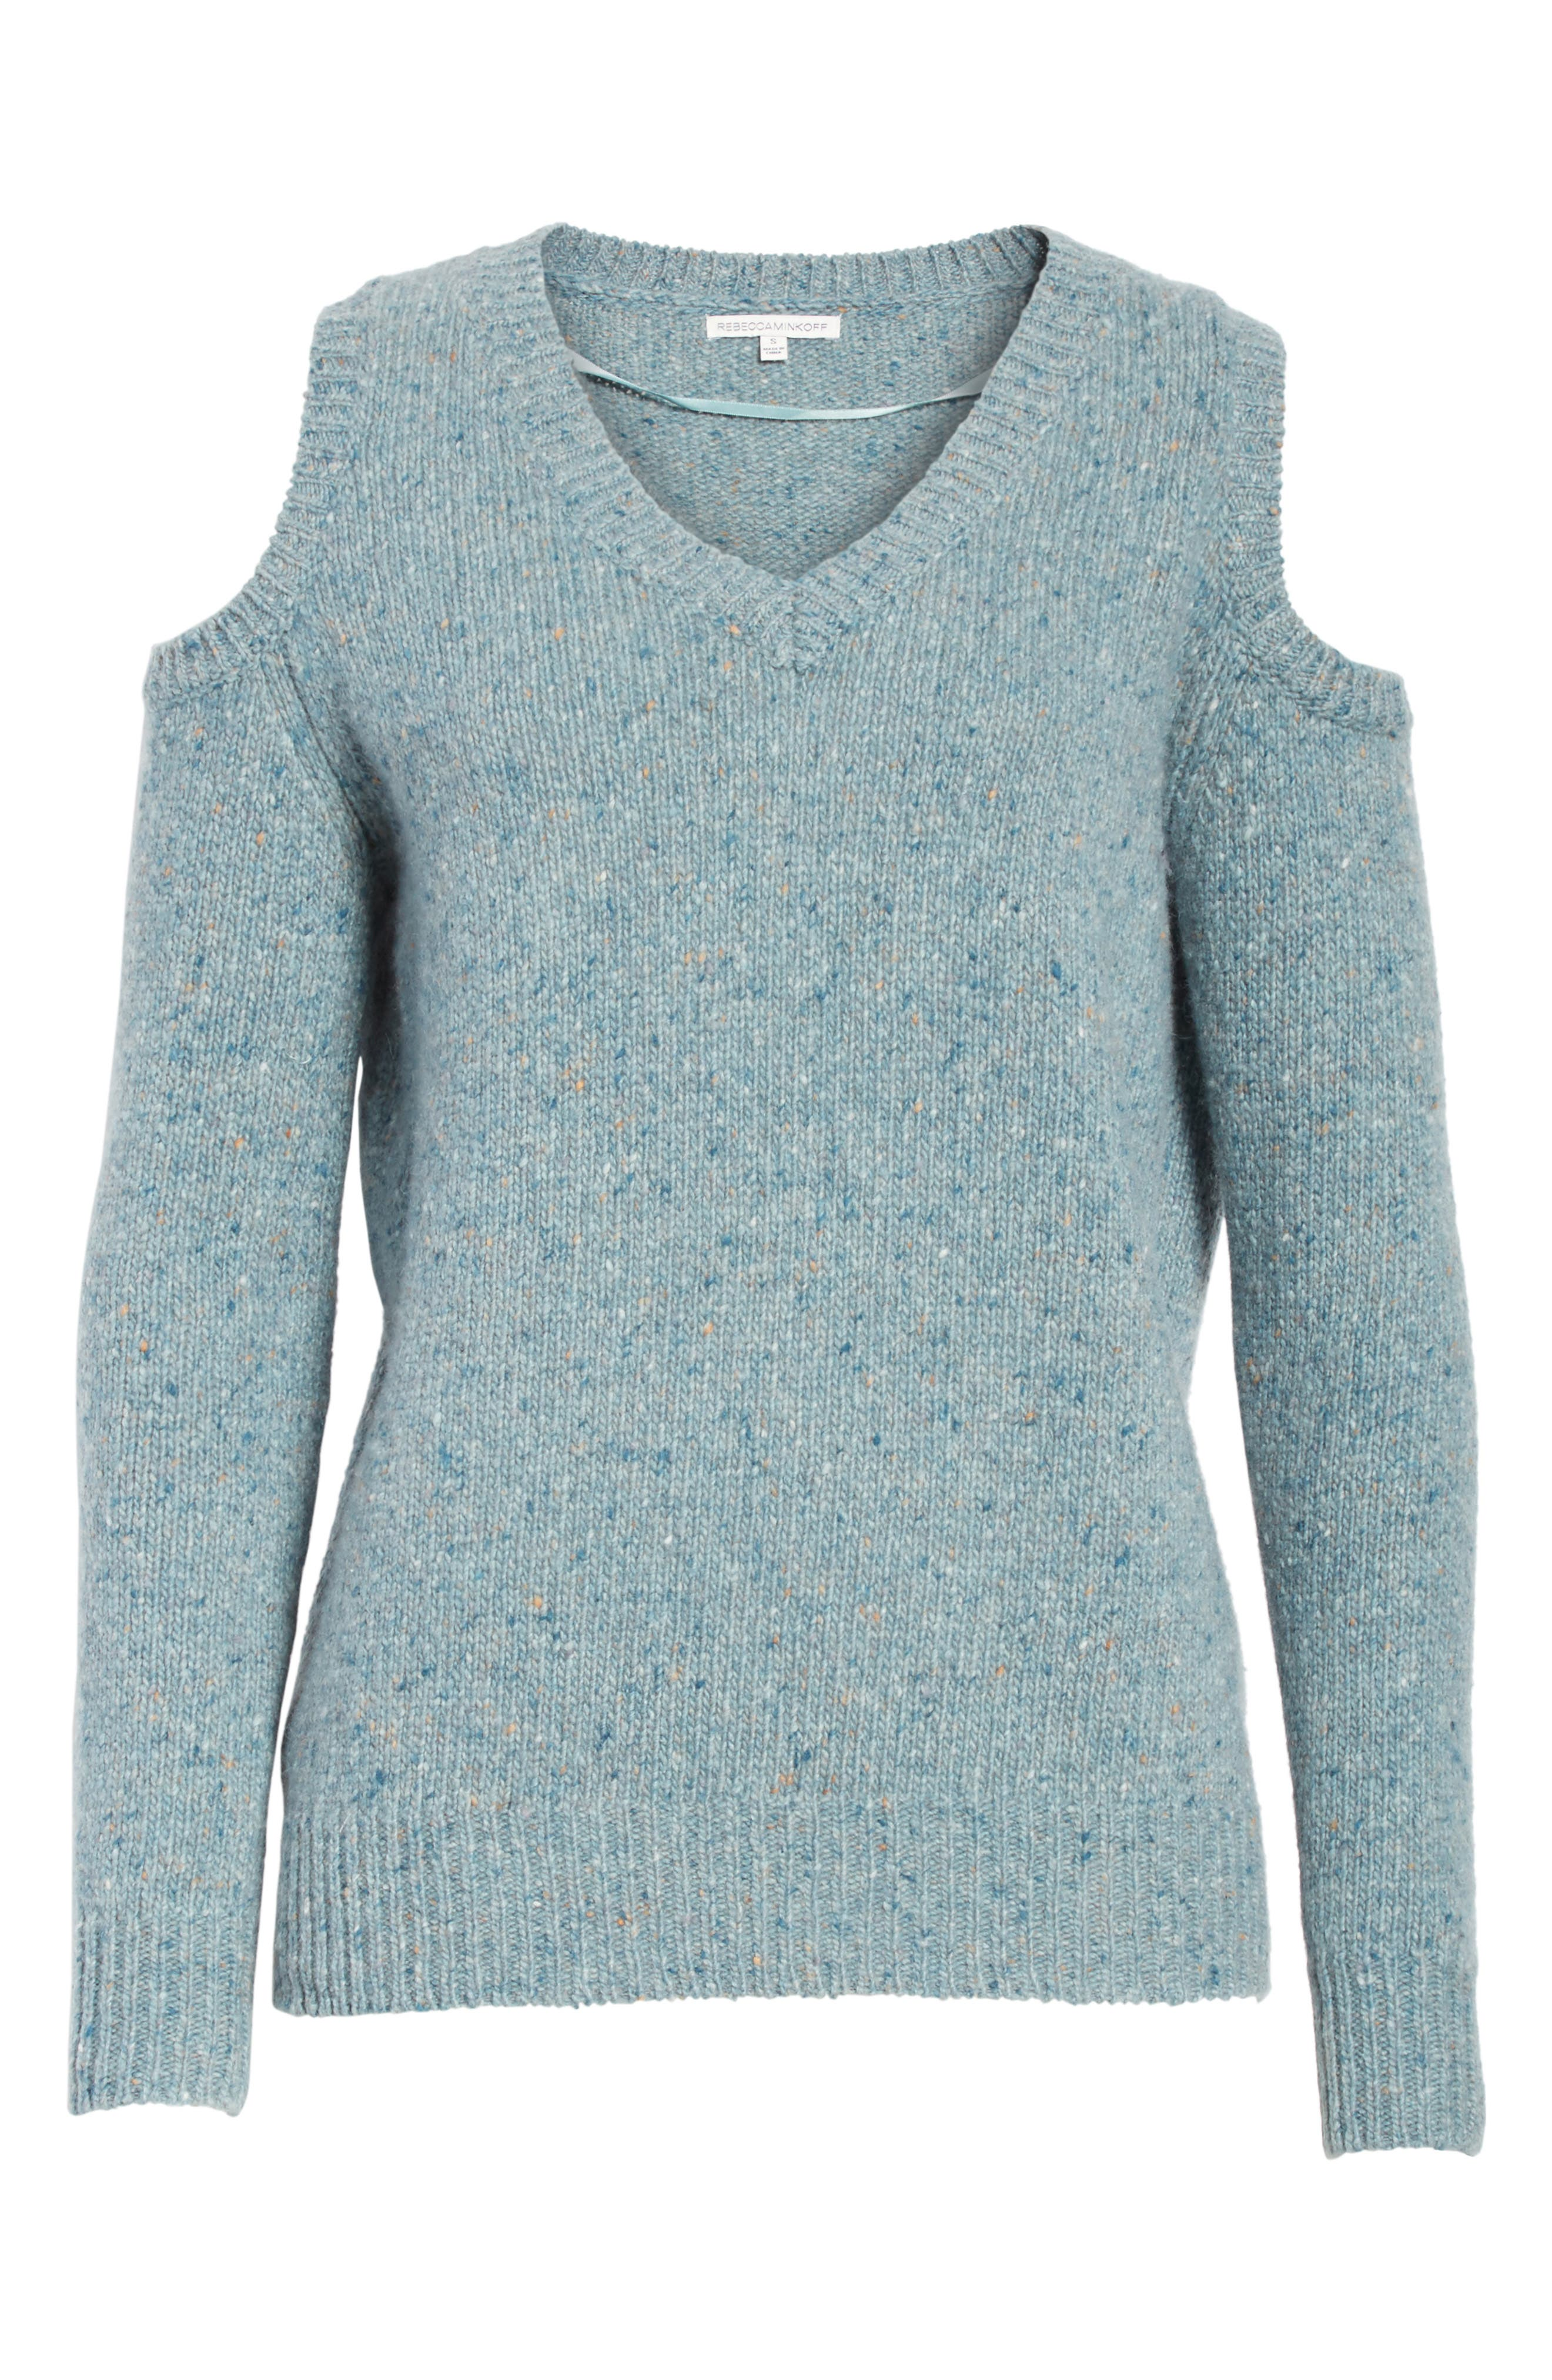 Page Cold Shoulder Sweater,                             Alternate thumbnail 6, color,                             Seamist